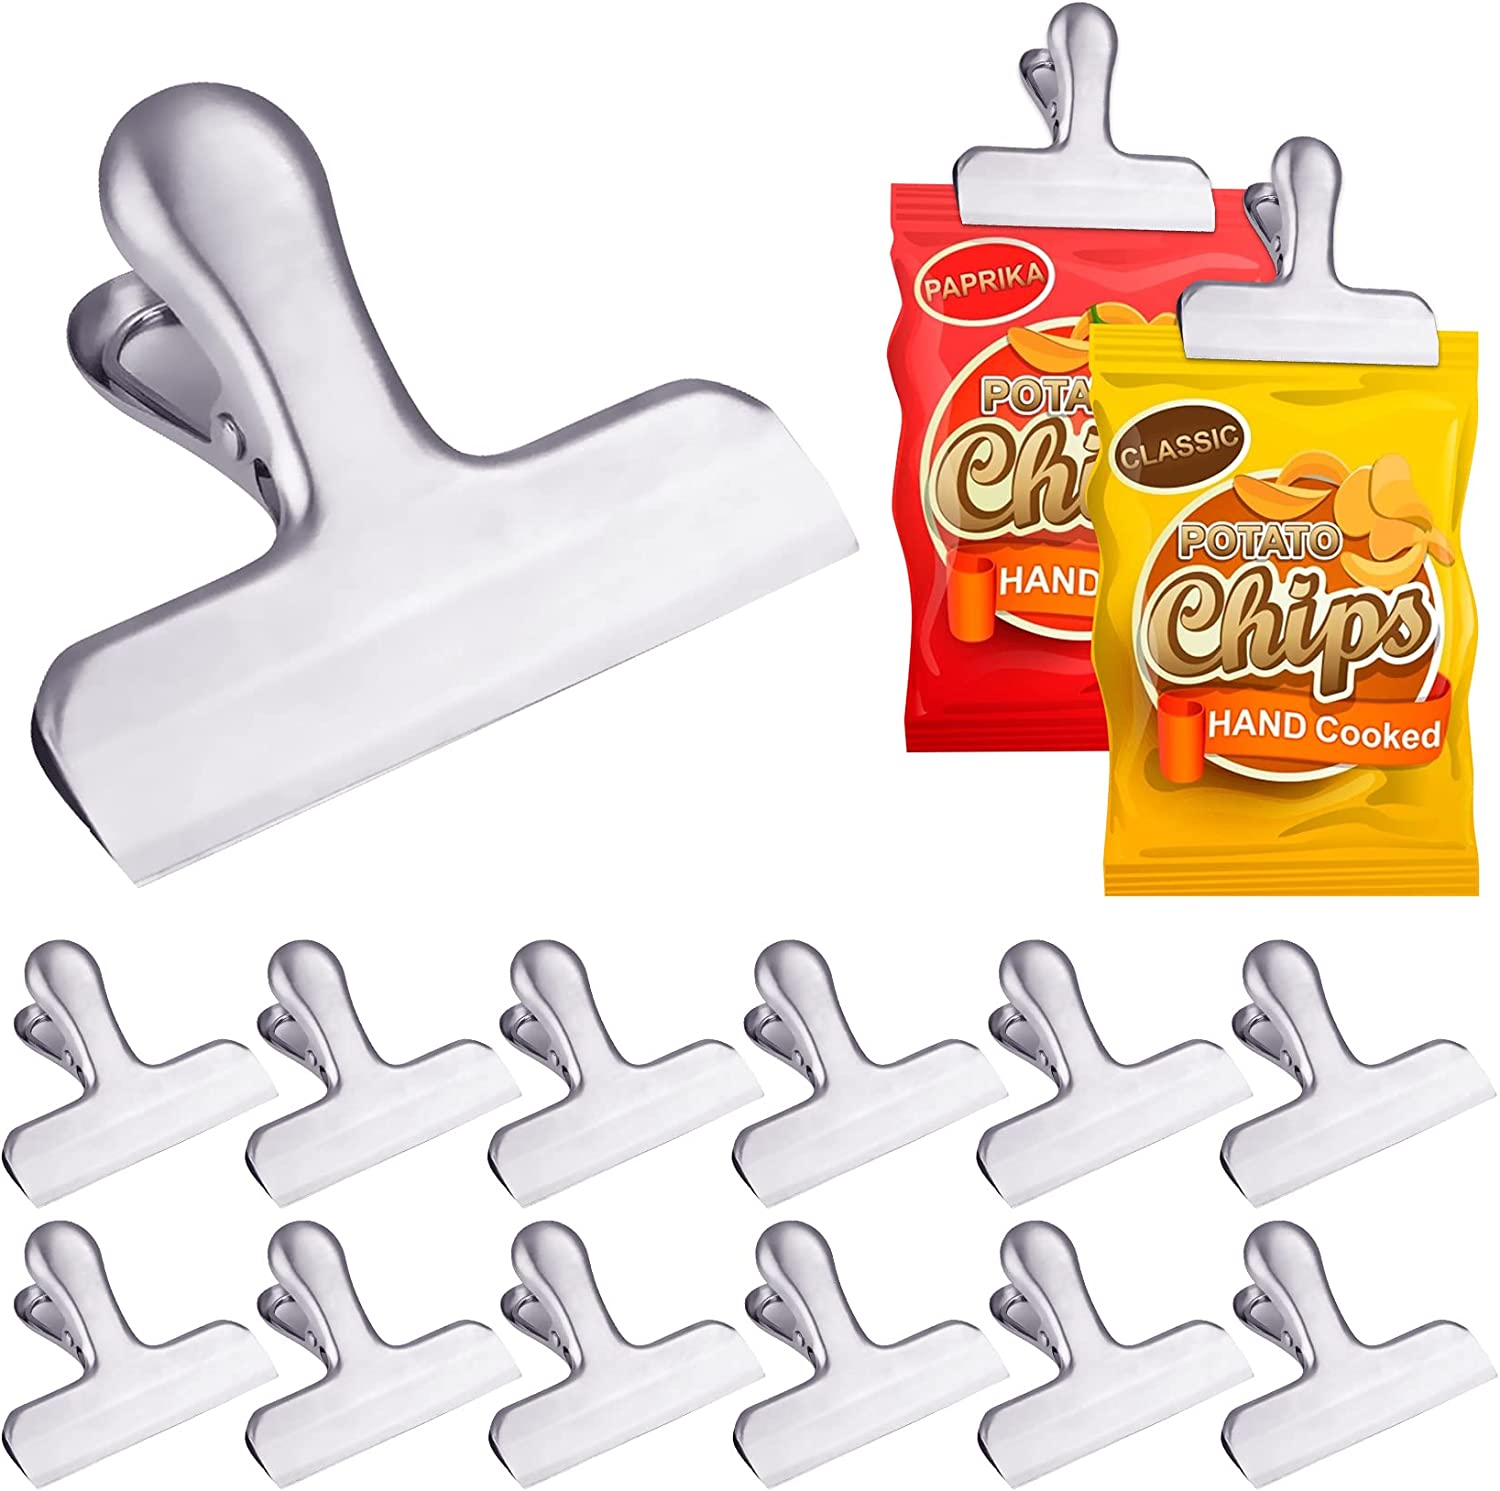 14Pack Bag Clips Heavy Duty Chip Bag Clips Heavy Duty Food Bag Clamp Air Tight Clips for Tight Seal Food Bags Coffee Bags